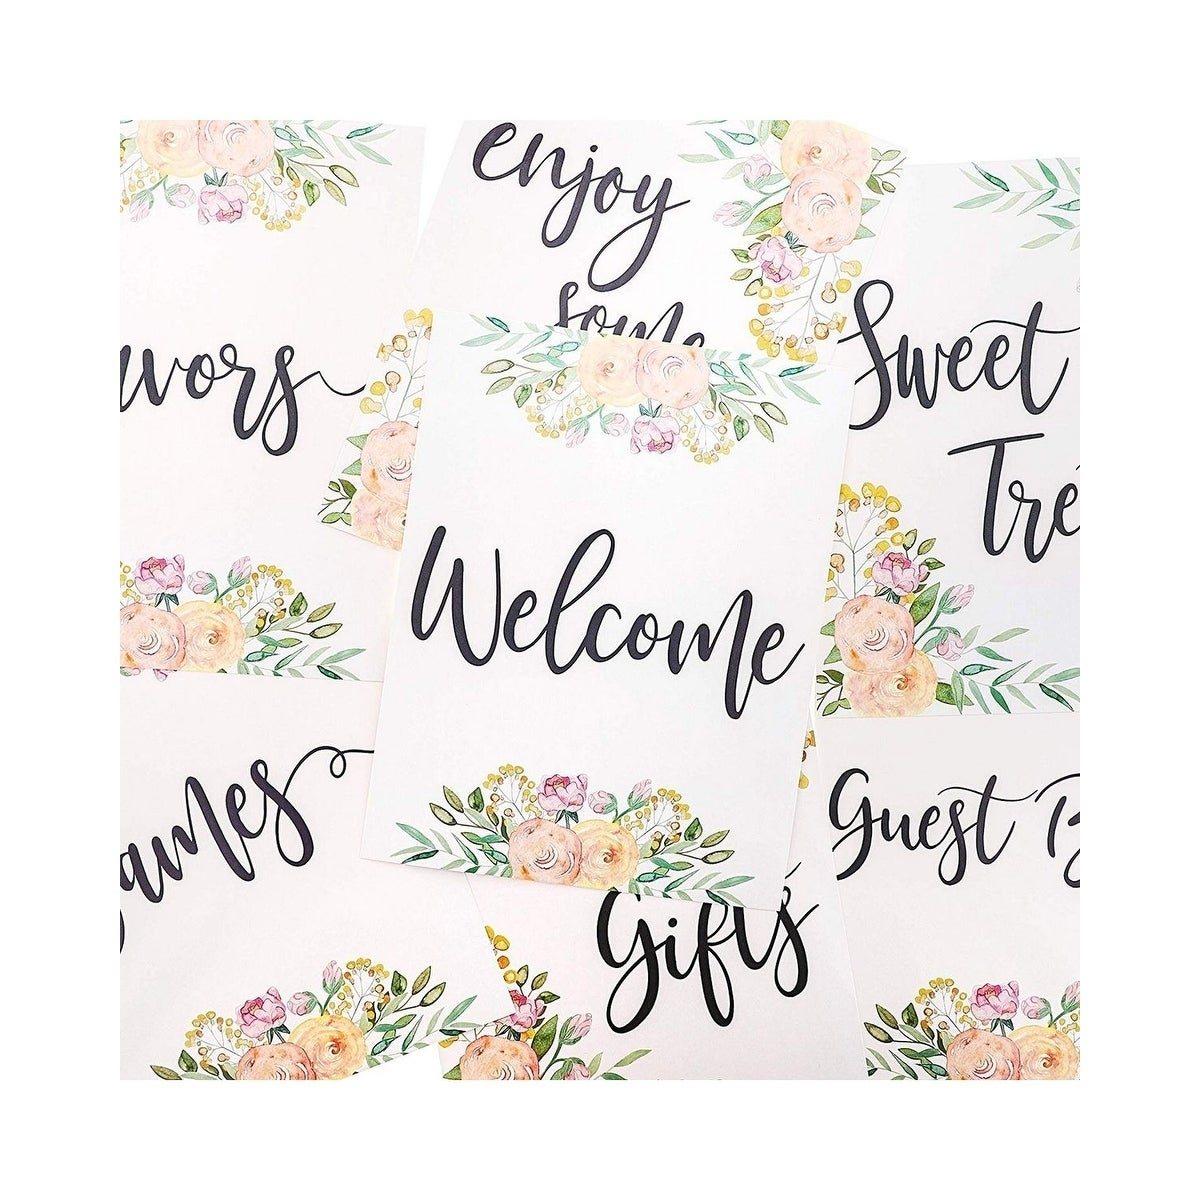 38243a9cbe33c 8-Pack Floral Baby Shower Signs for Table Decor and Party Decorations,  8.5